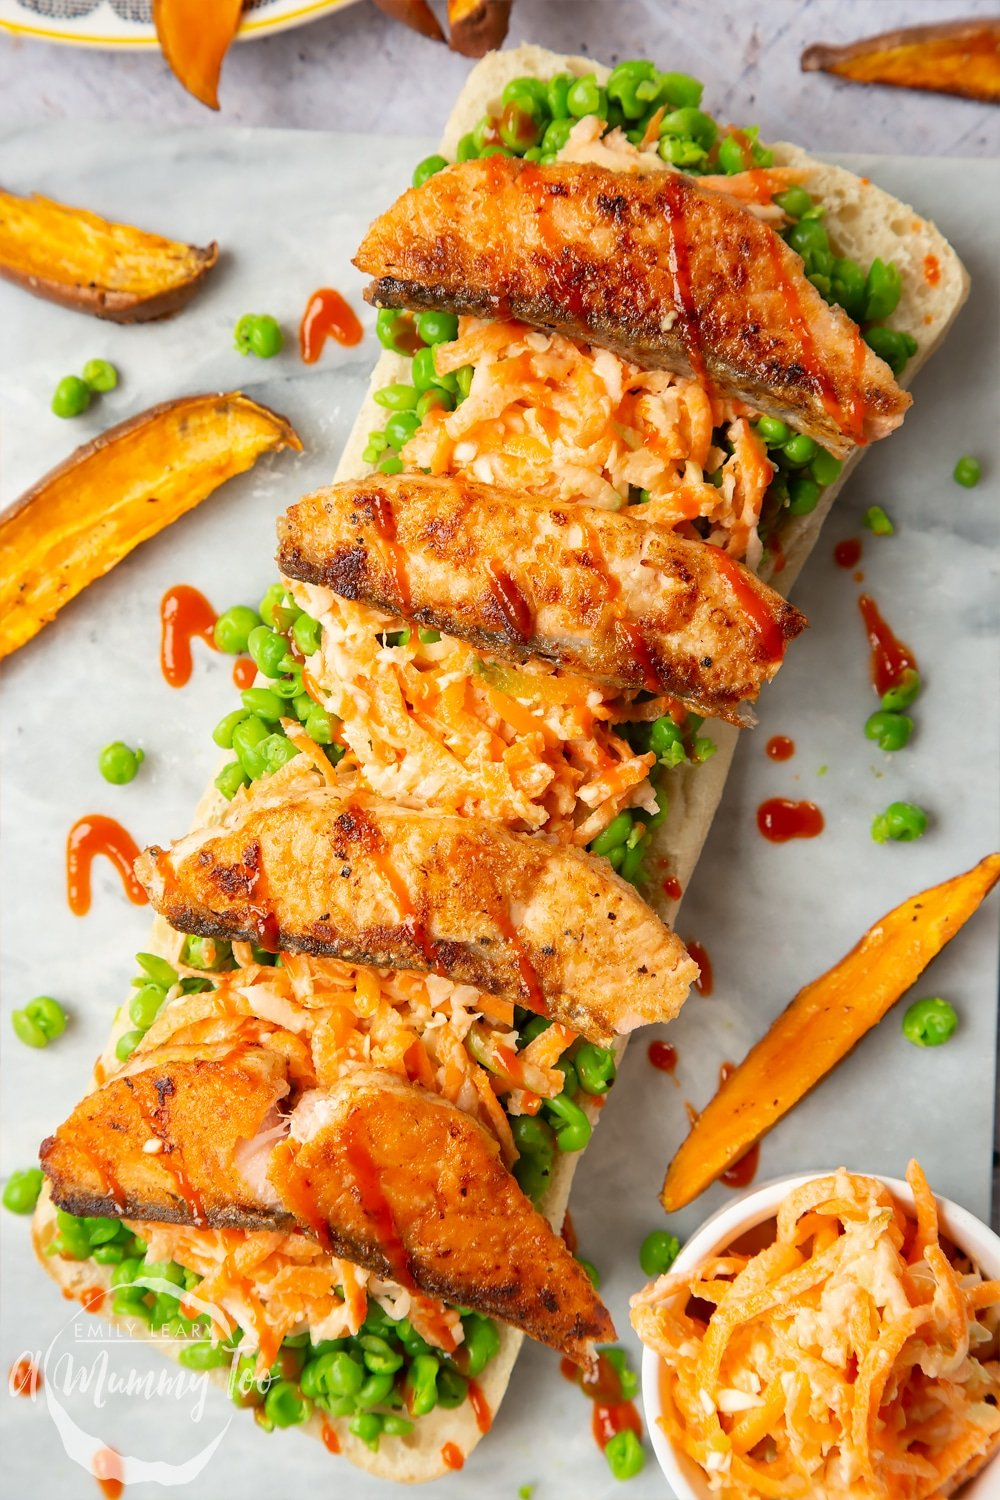 A healthier fish finger sarnie made with mushy peas, coleslaw and topped with seasoned salmon